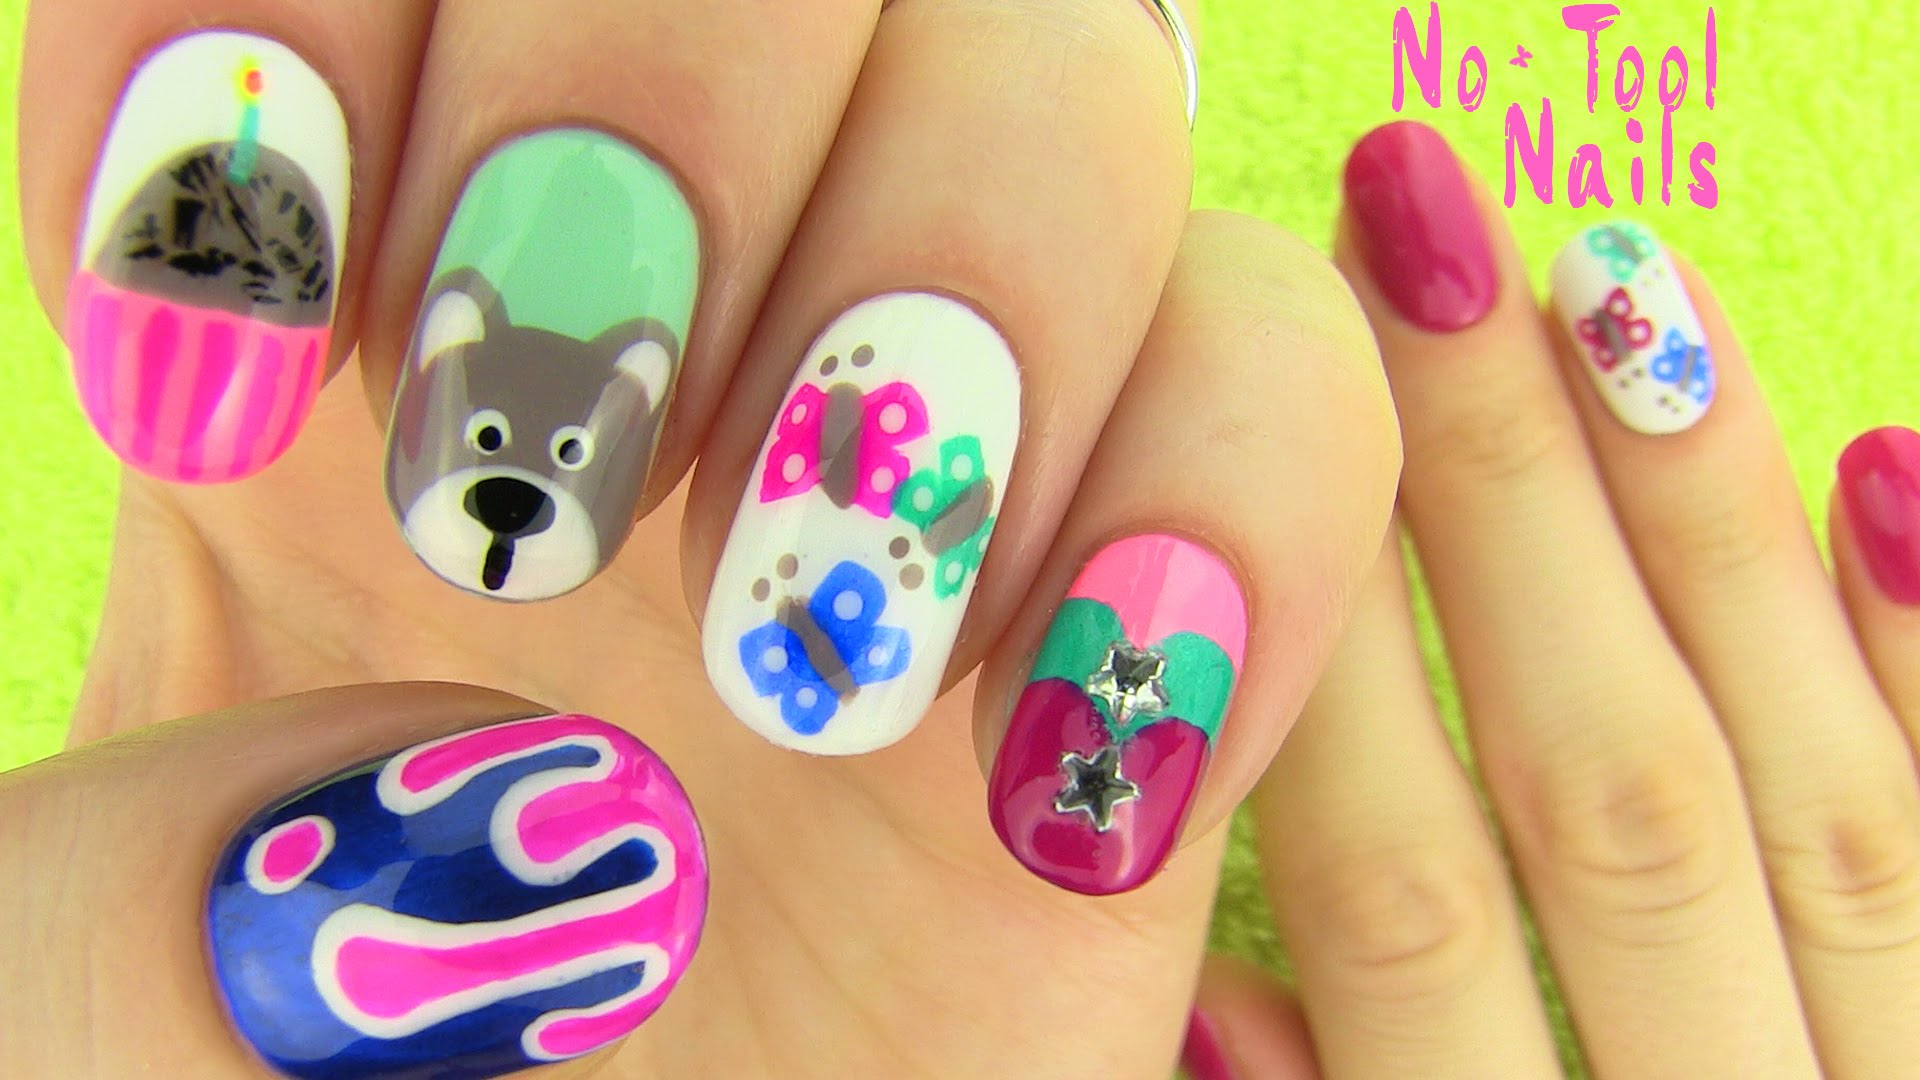 Nails Without Nail Art Tools 5 Designs